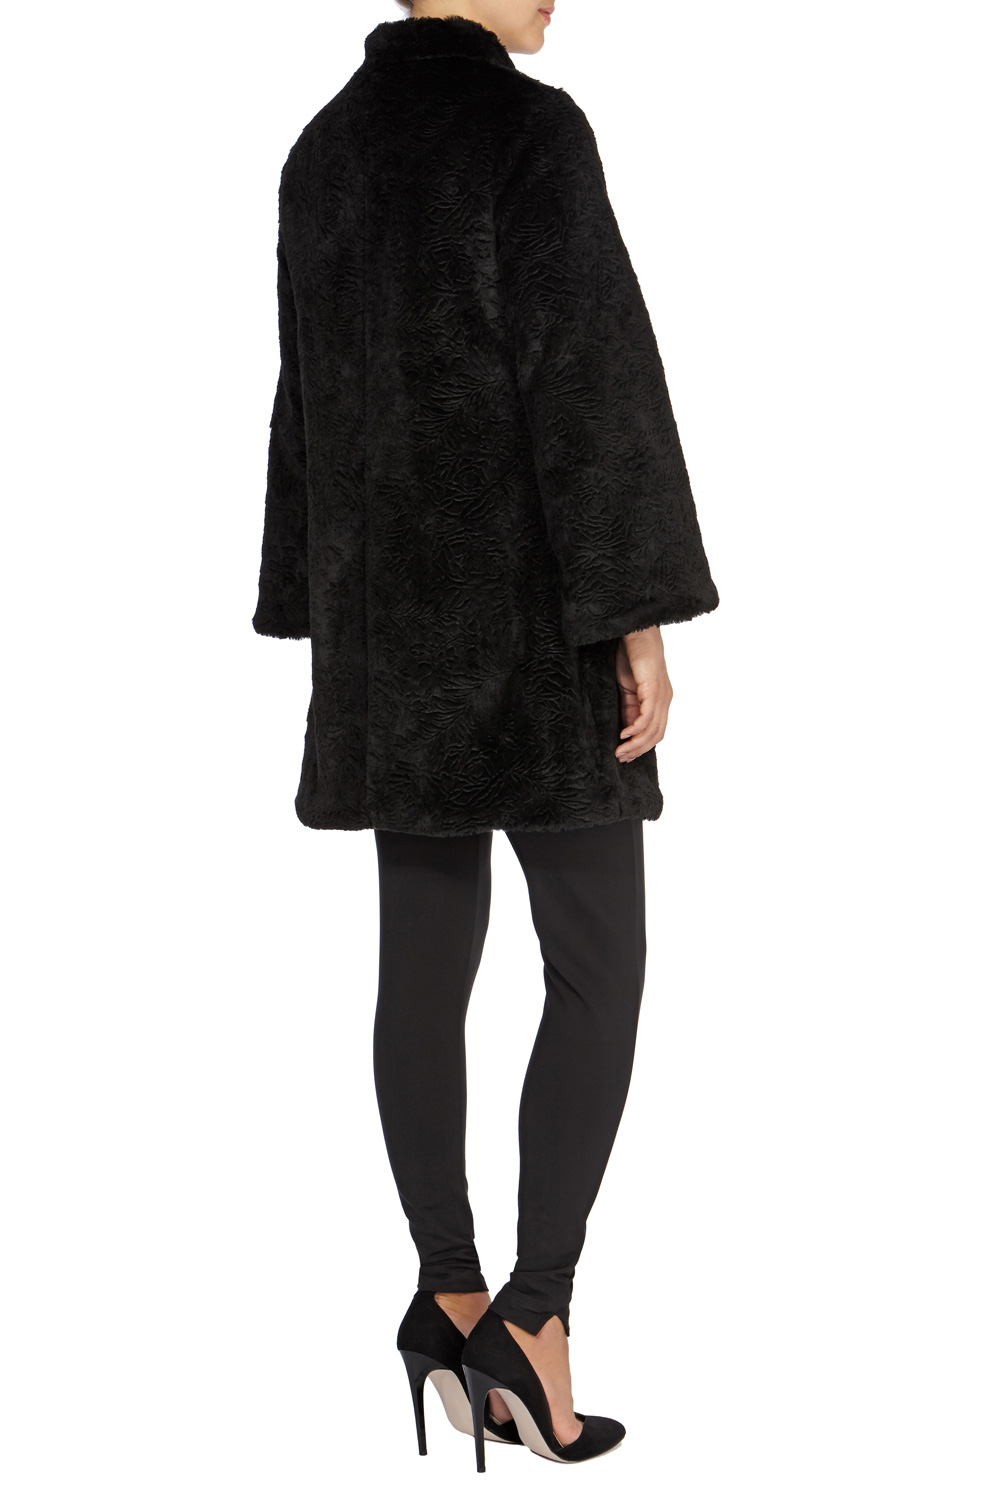 Coast Ottawa Faux Fur Coat in Black | Lyst